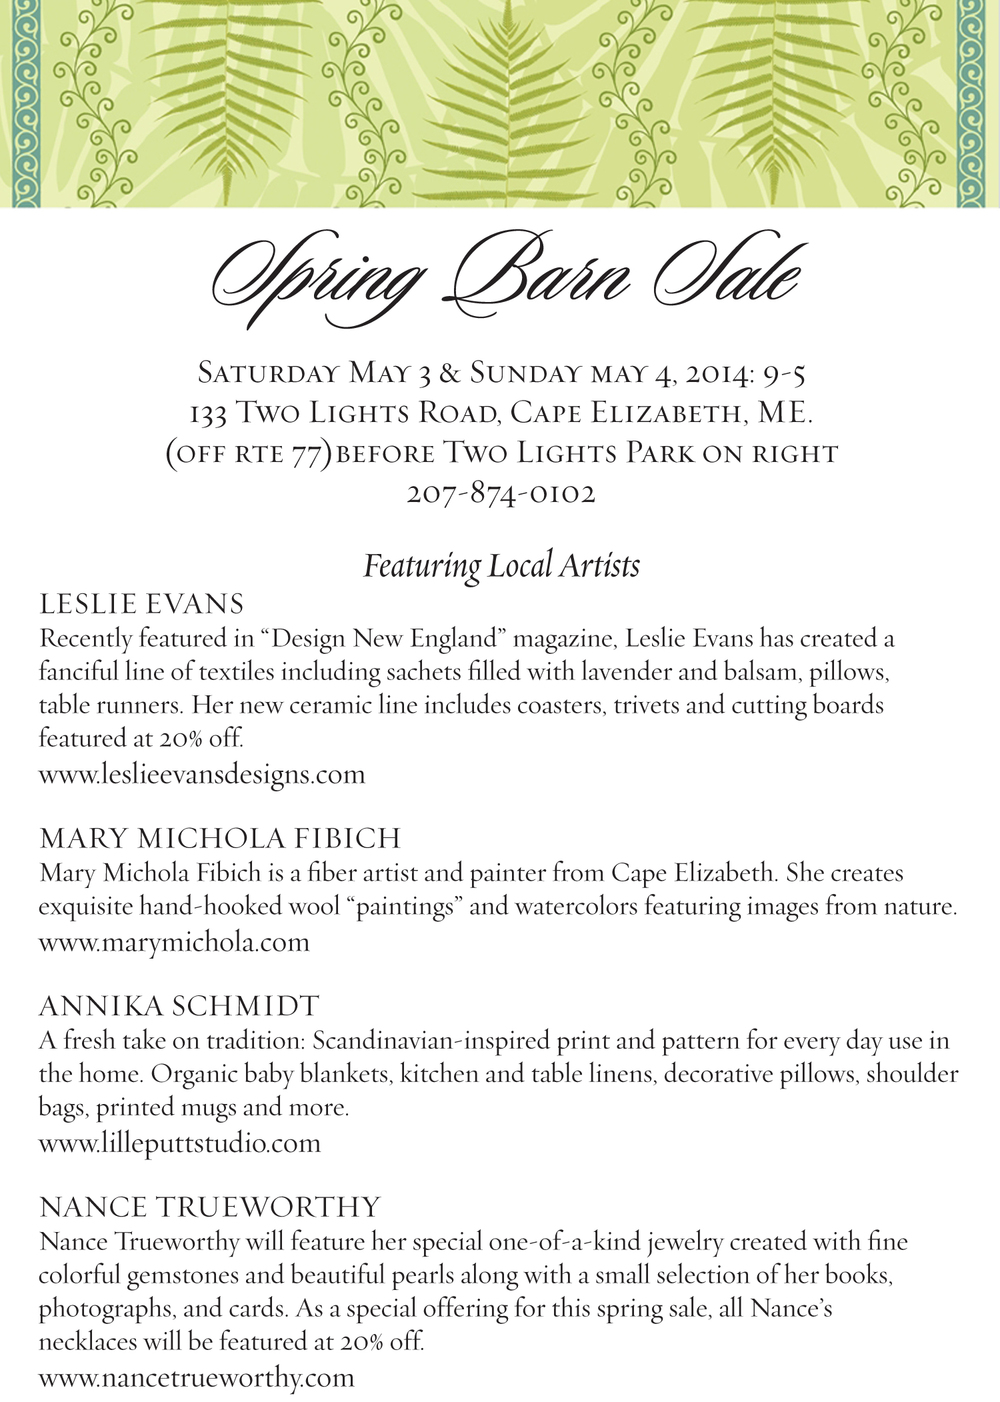 It's official! Mark your calendars, the Cape Elizabeth Barn Sale is happening again, May 3rd and 4th. Just in time for Mother's Day...